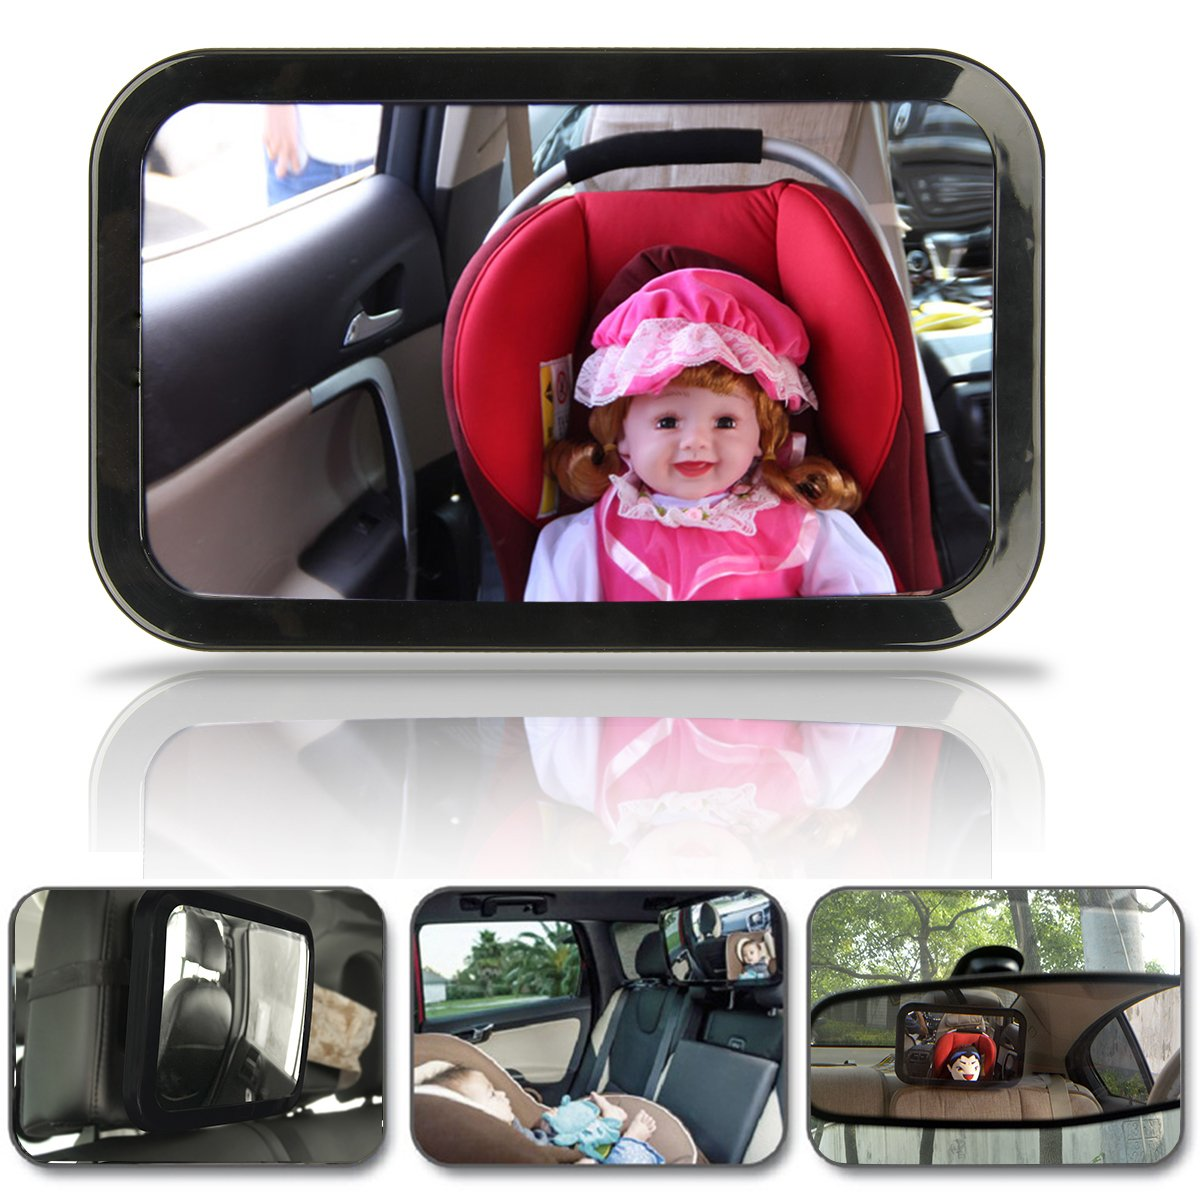 Back Seat Mirror Rear View,SOONHUA Baby Car Mirror for Back Seat/Car Back Seat Child Safety Mirror/360 Adjustable Angle/Wide View/Shatterproof Glass by SOONHUA   B01HM3U2T6